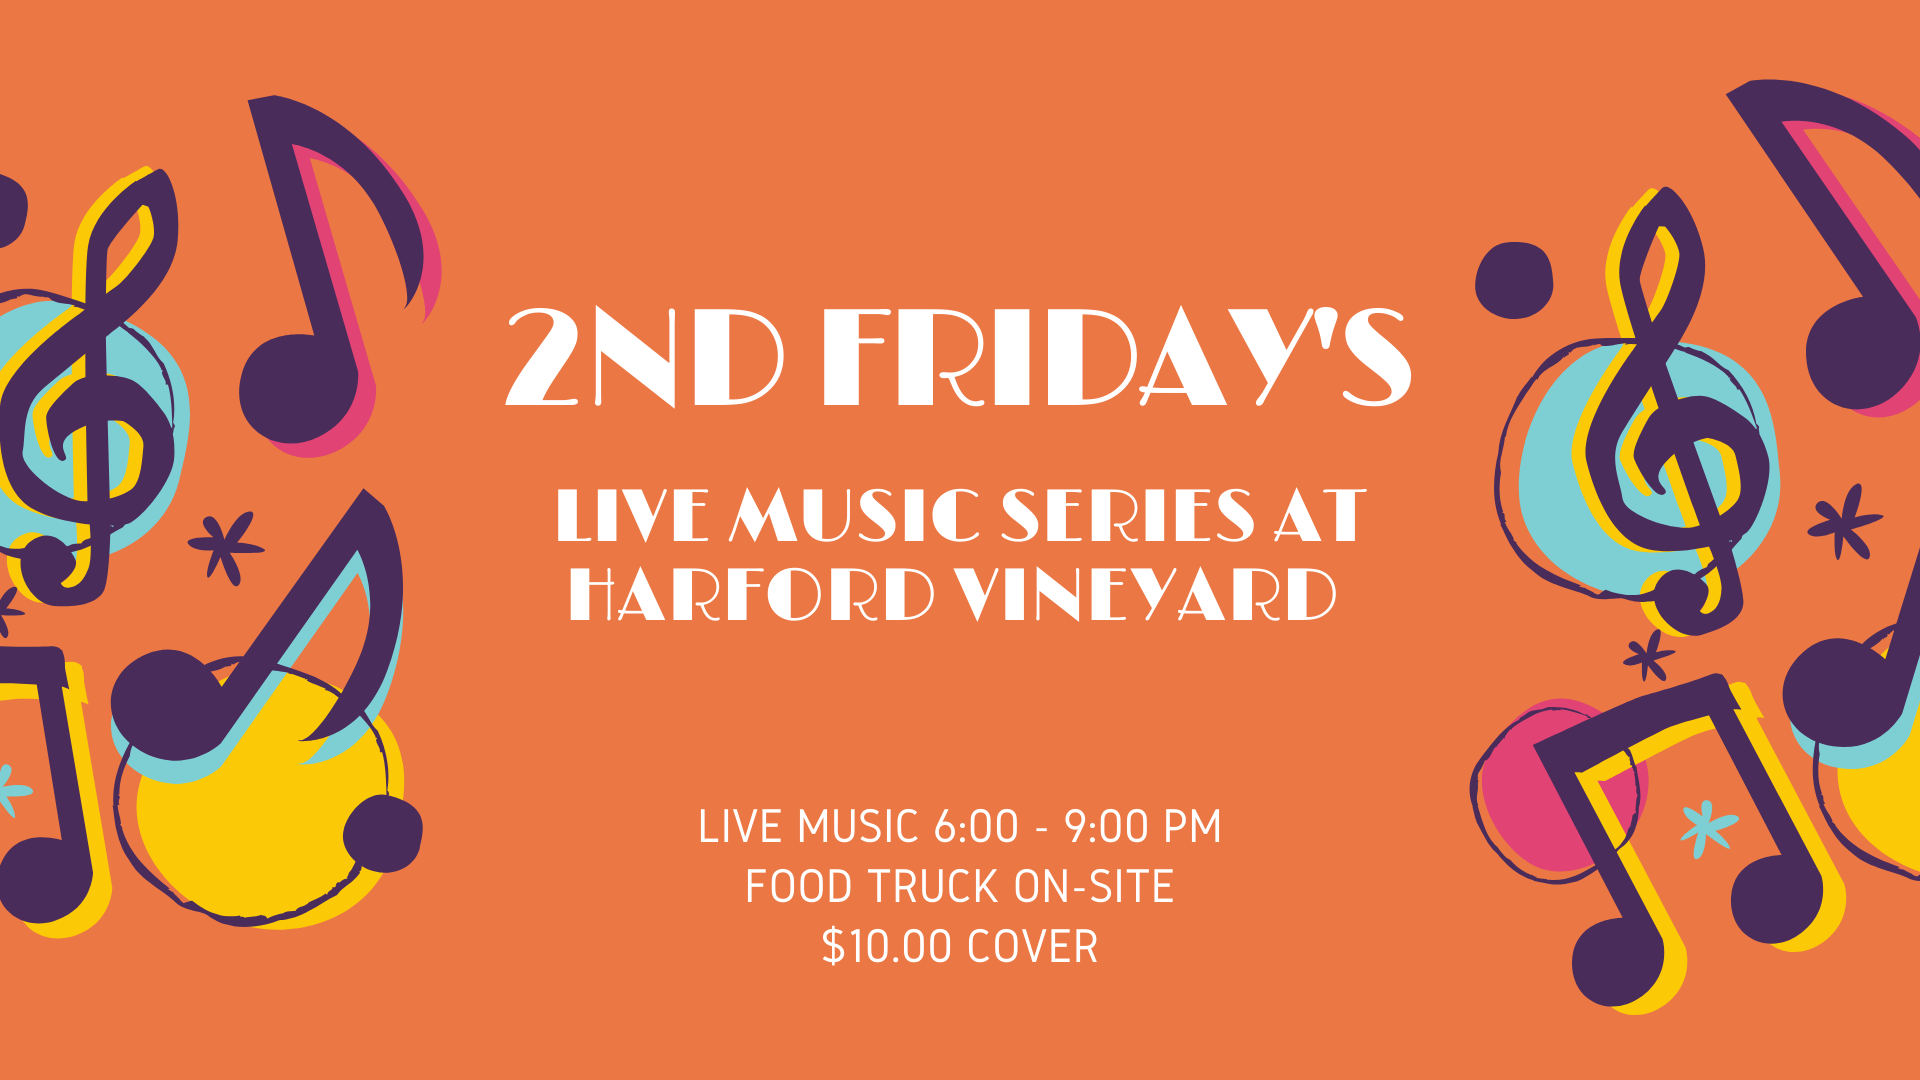 2nd Friday - August 13th, 2021